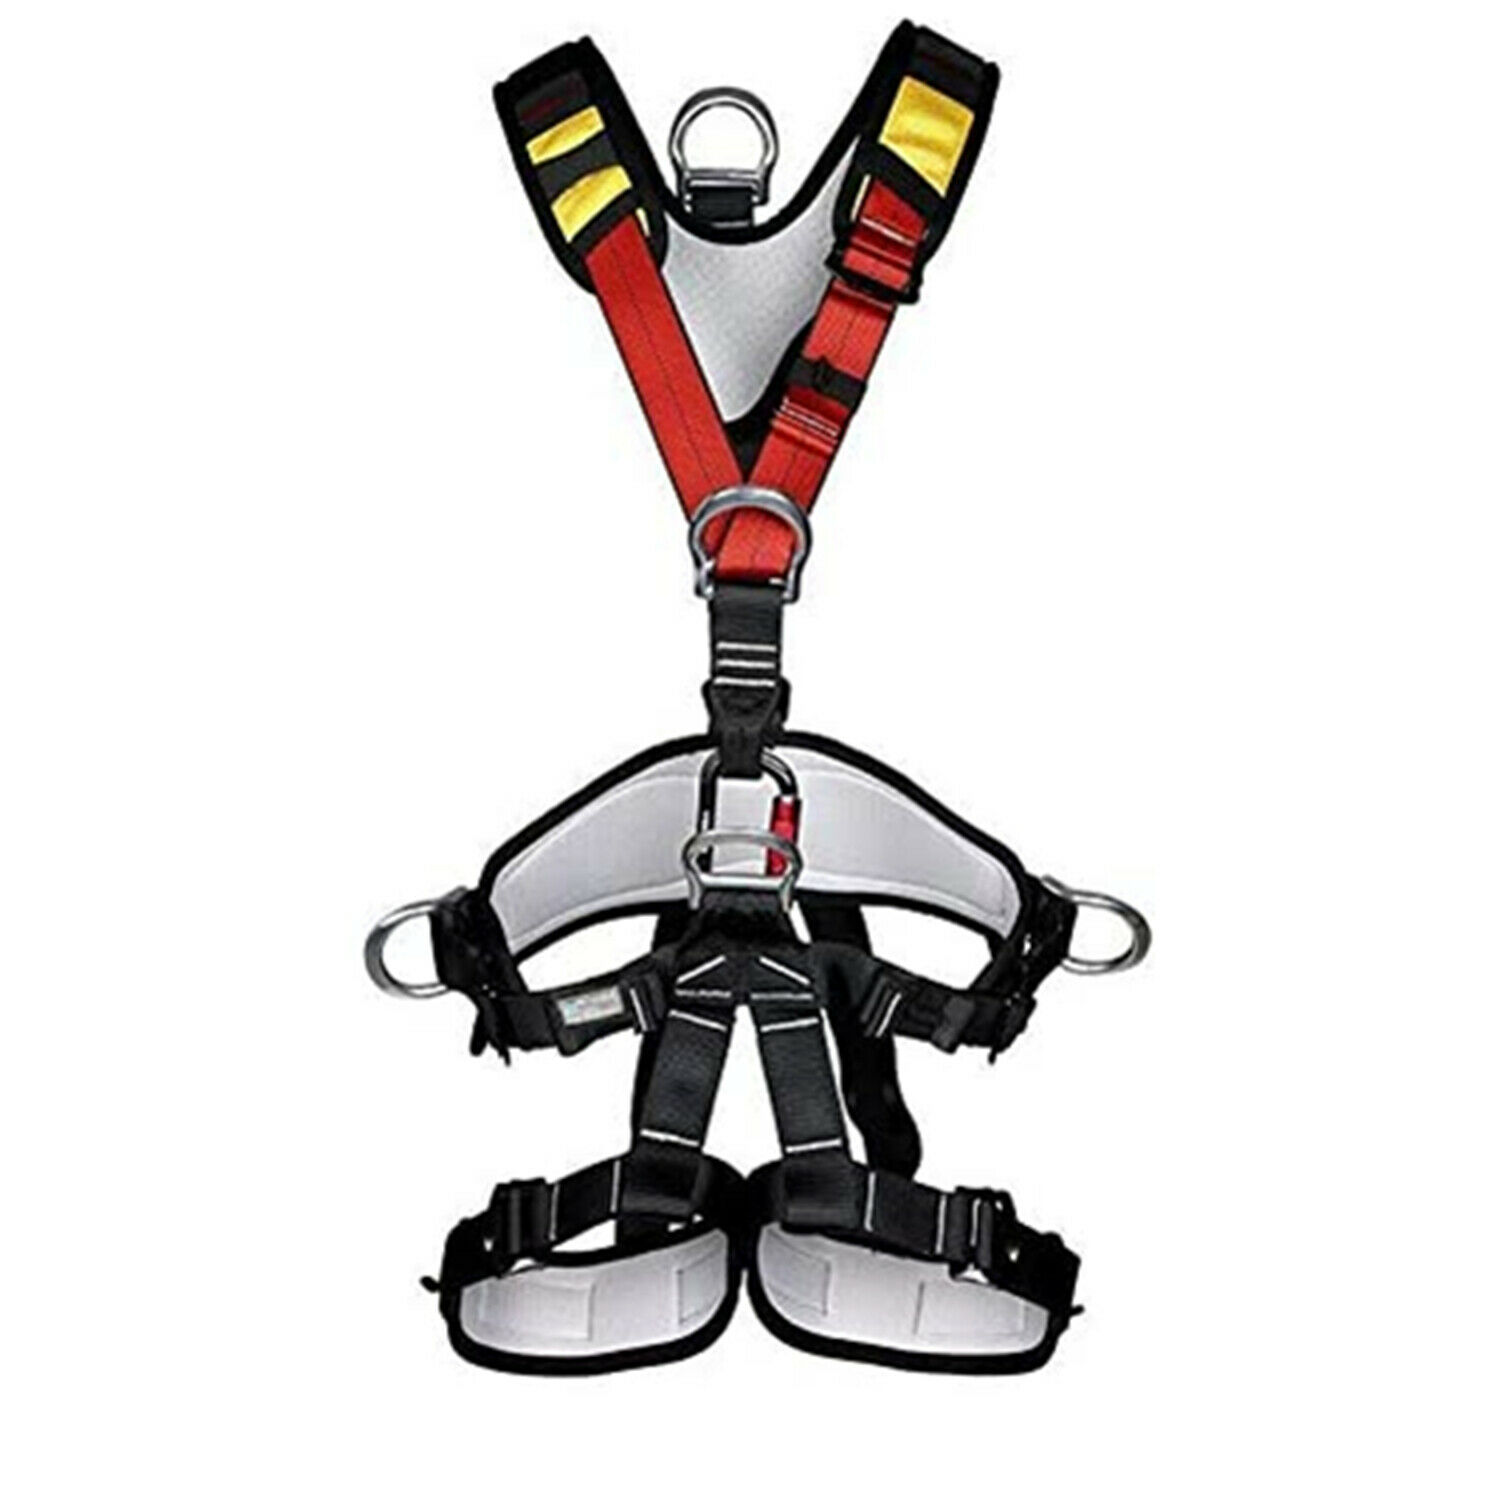 Details about  /Climbing Set Climber Adjustable Pro Body Safety Harness Glove Rappelling Rope